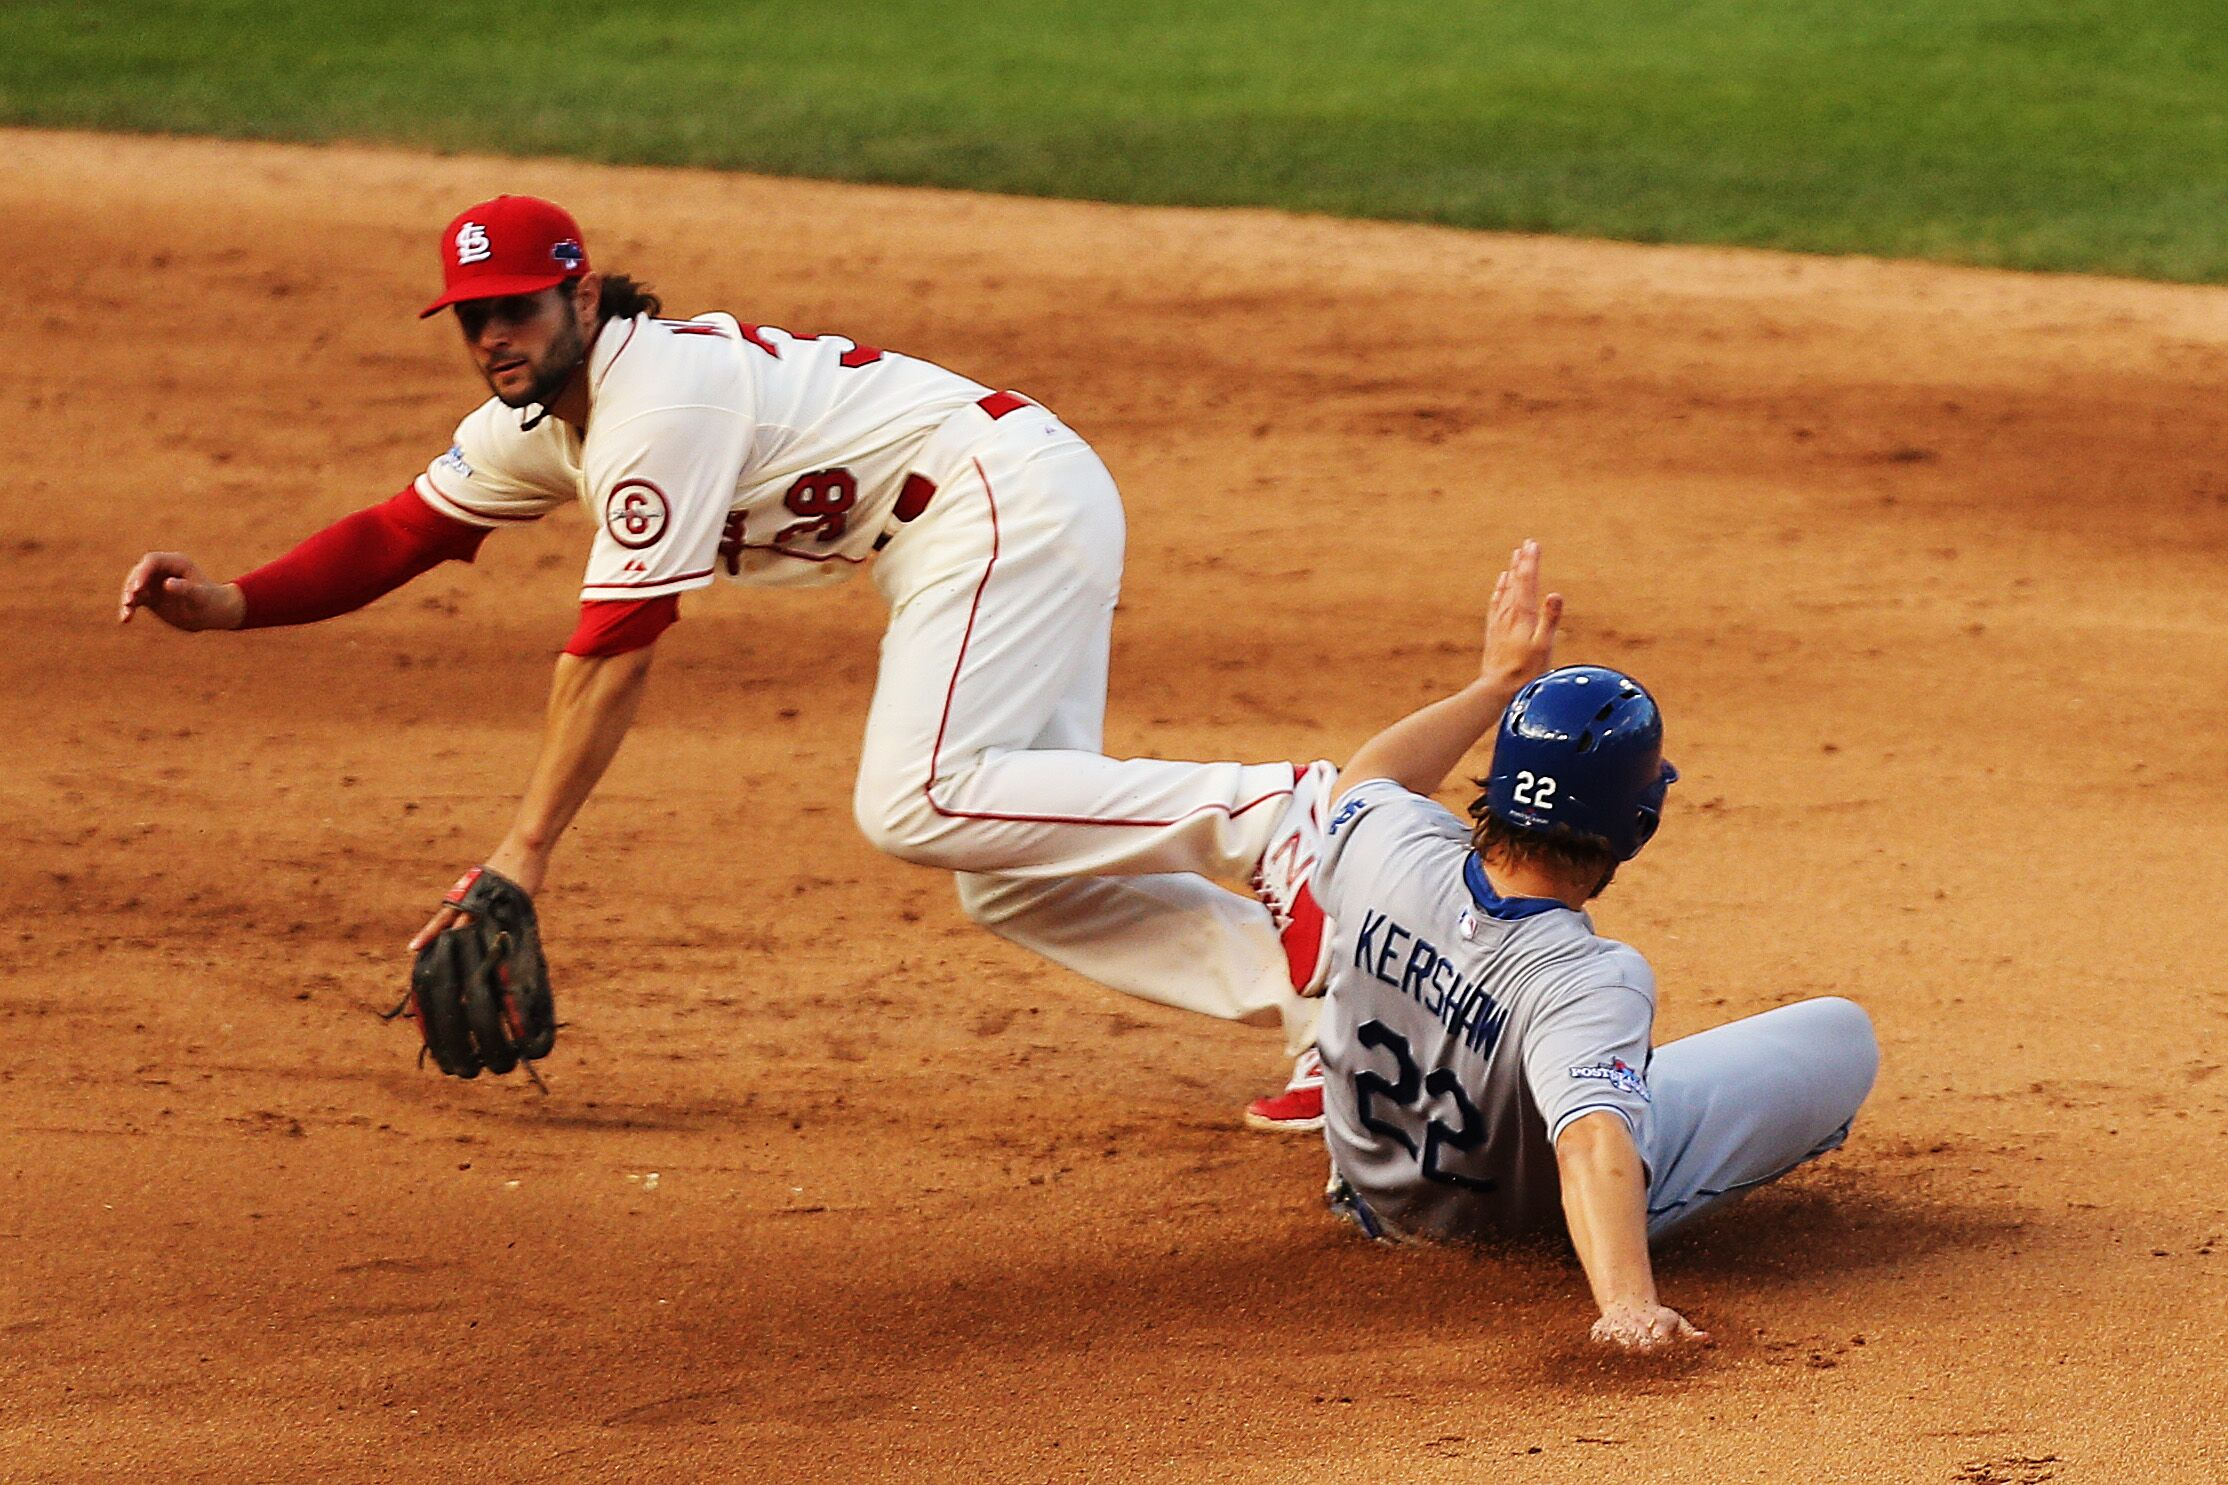 184231339-nlcs-los-angeles-dodgers-v-st-louis-cardinals-game-two.jpg